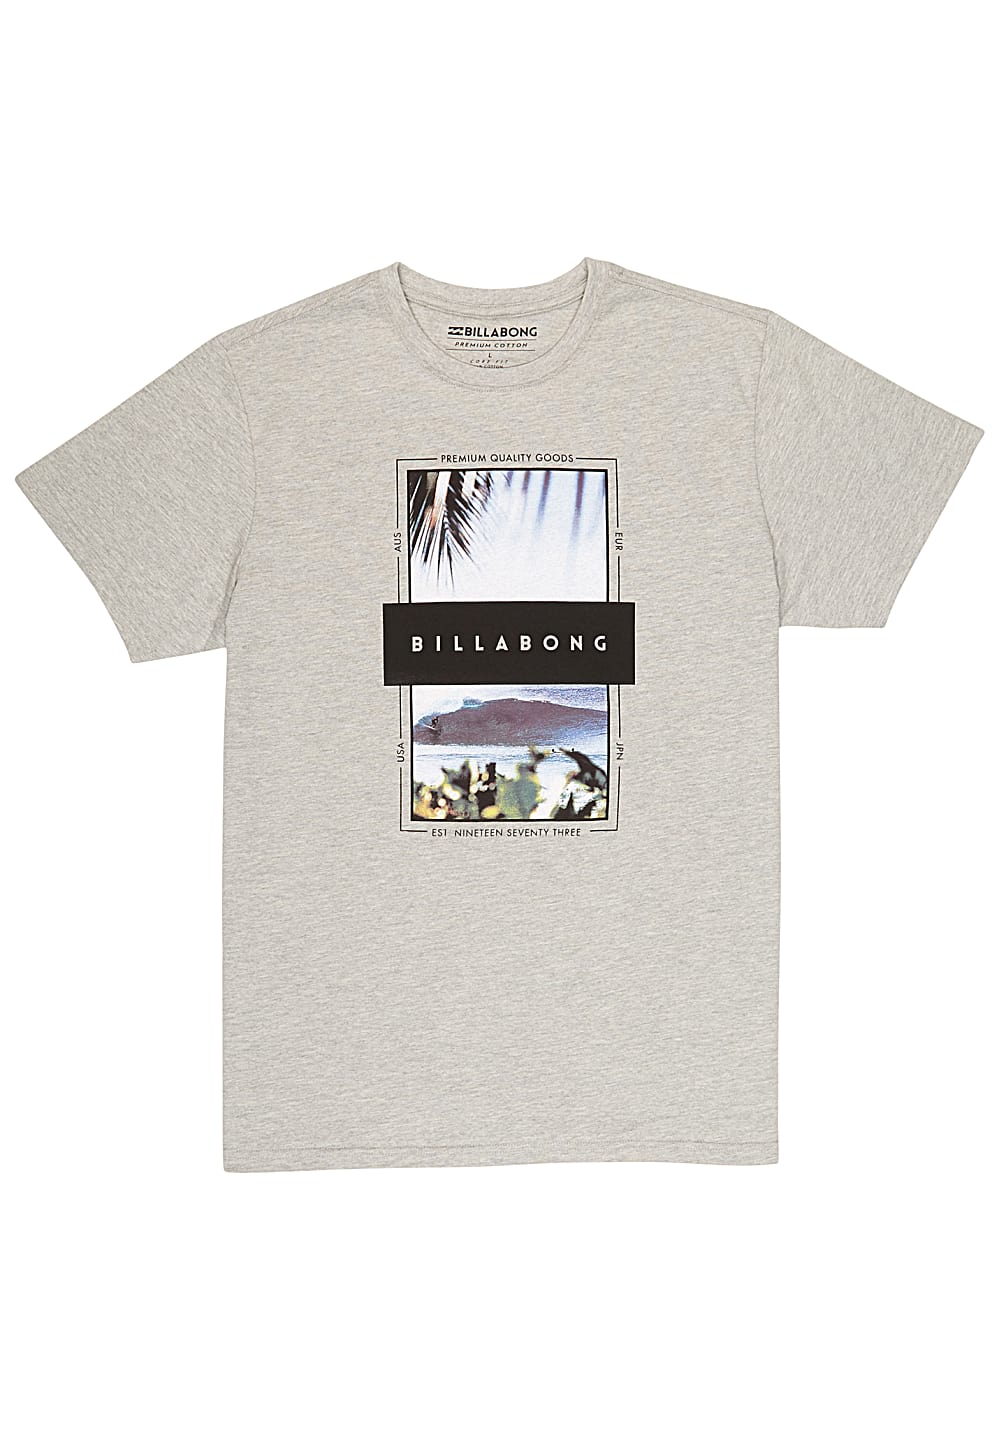 billabong tshirt  BILLABONG Locked In - T-Shirt per Uomo - Grigio - Planet Sports